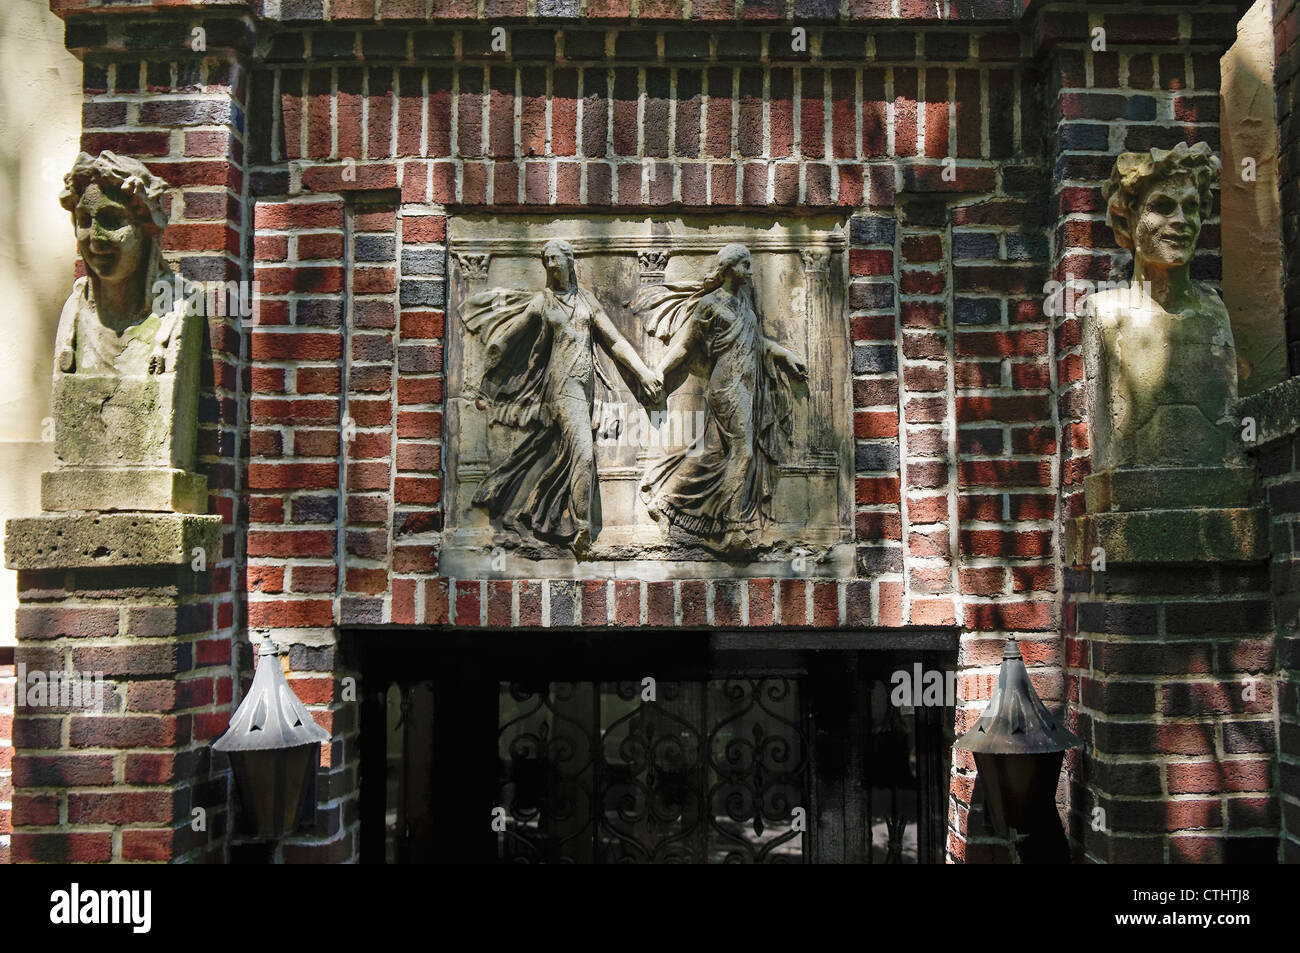 Brooklyn Heights, Brownstone House entrance with sculptures, New York - Stock Image